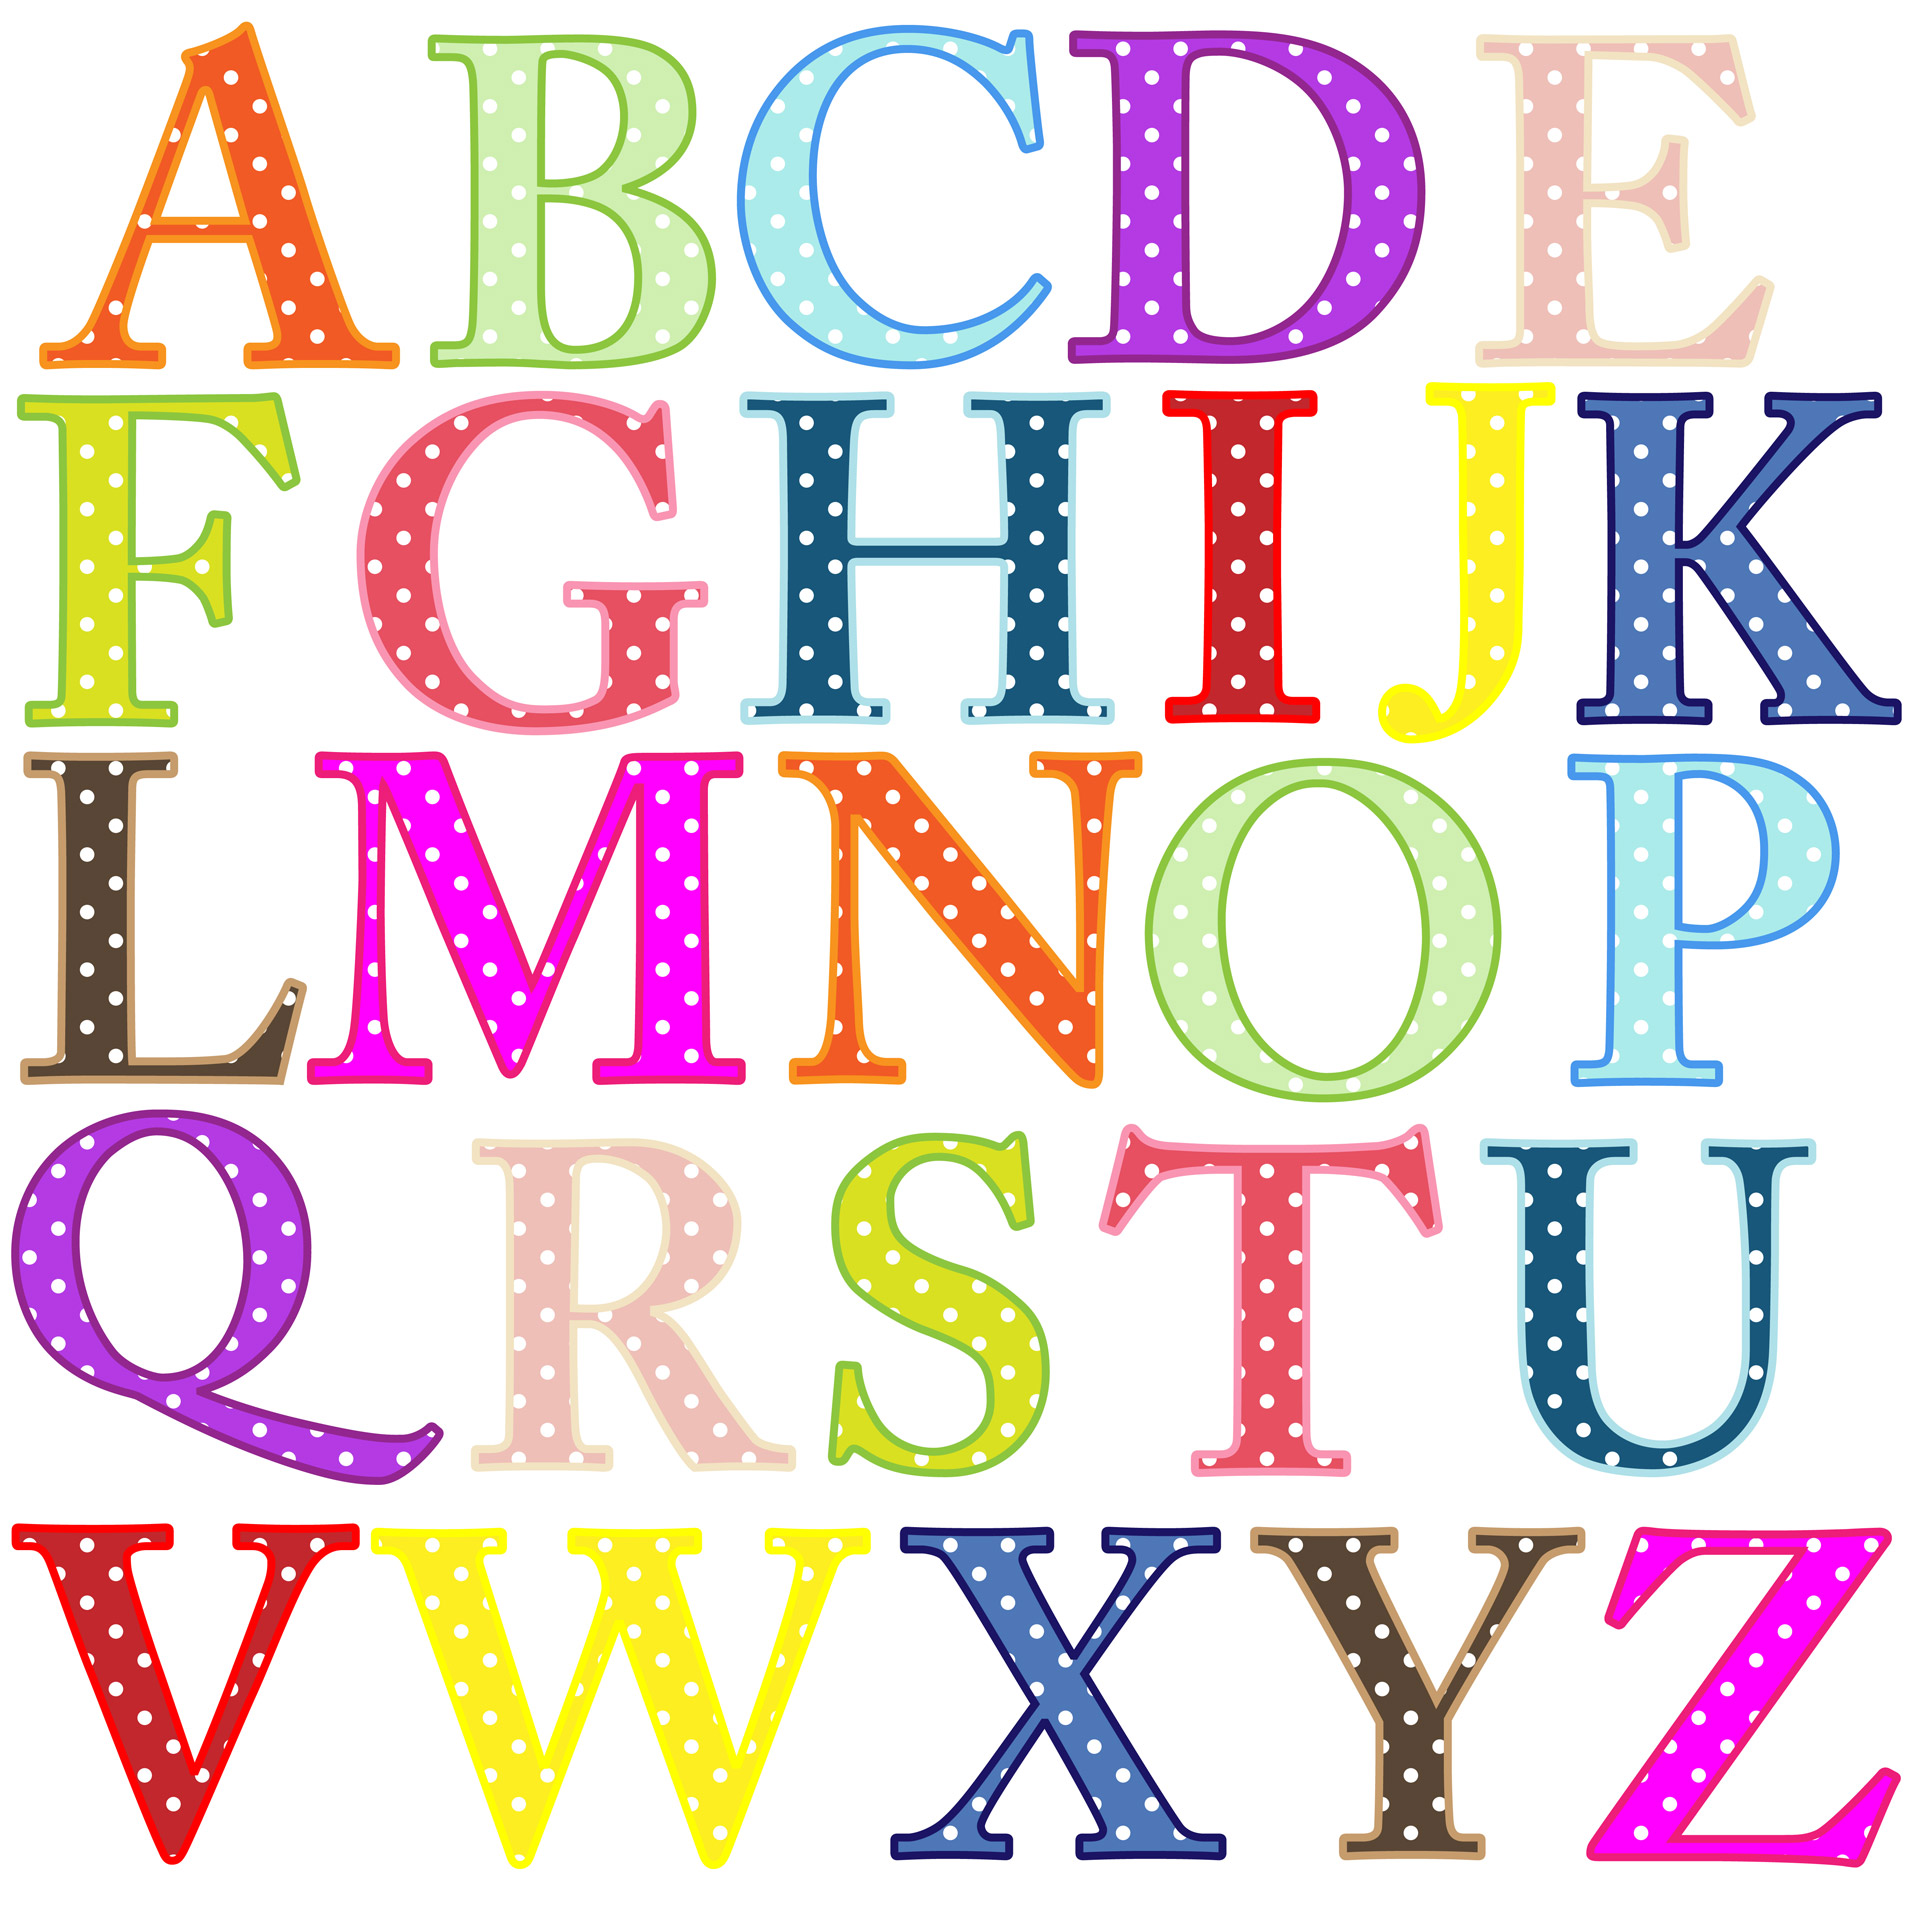 Alphabet Letters Clip-art Free Stock Photo - Public Domain Pictures svg library library